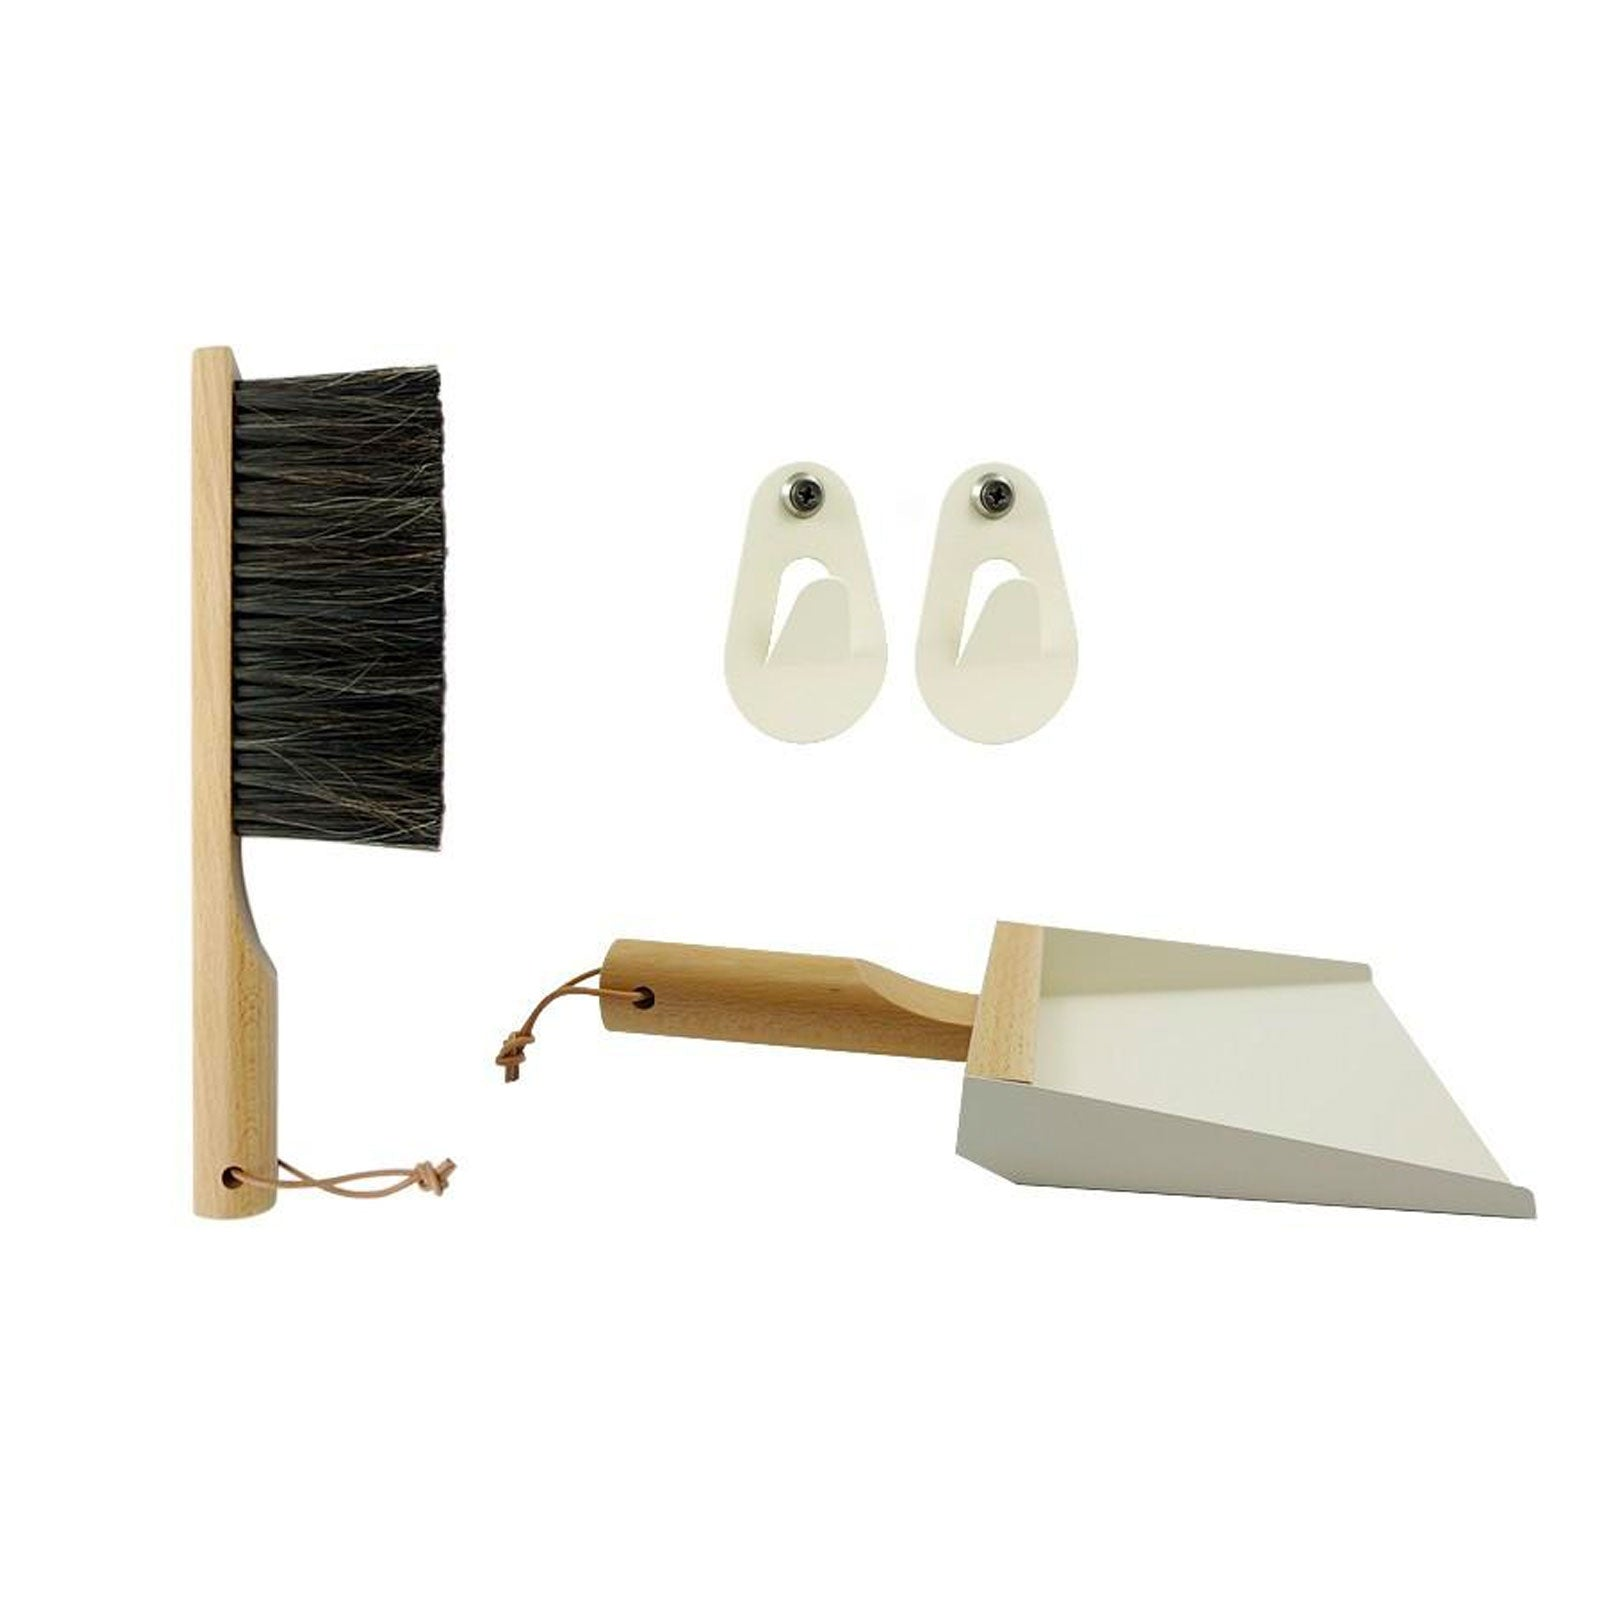 Cream and Natural Dustpan and Brush Set with Hooks